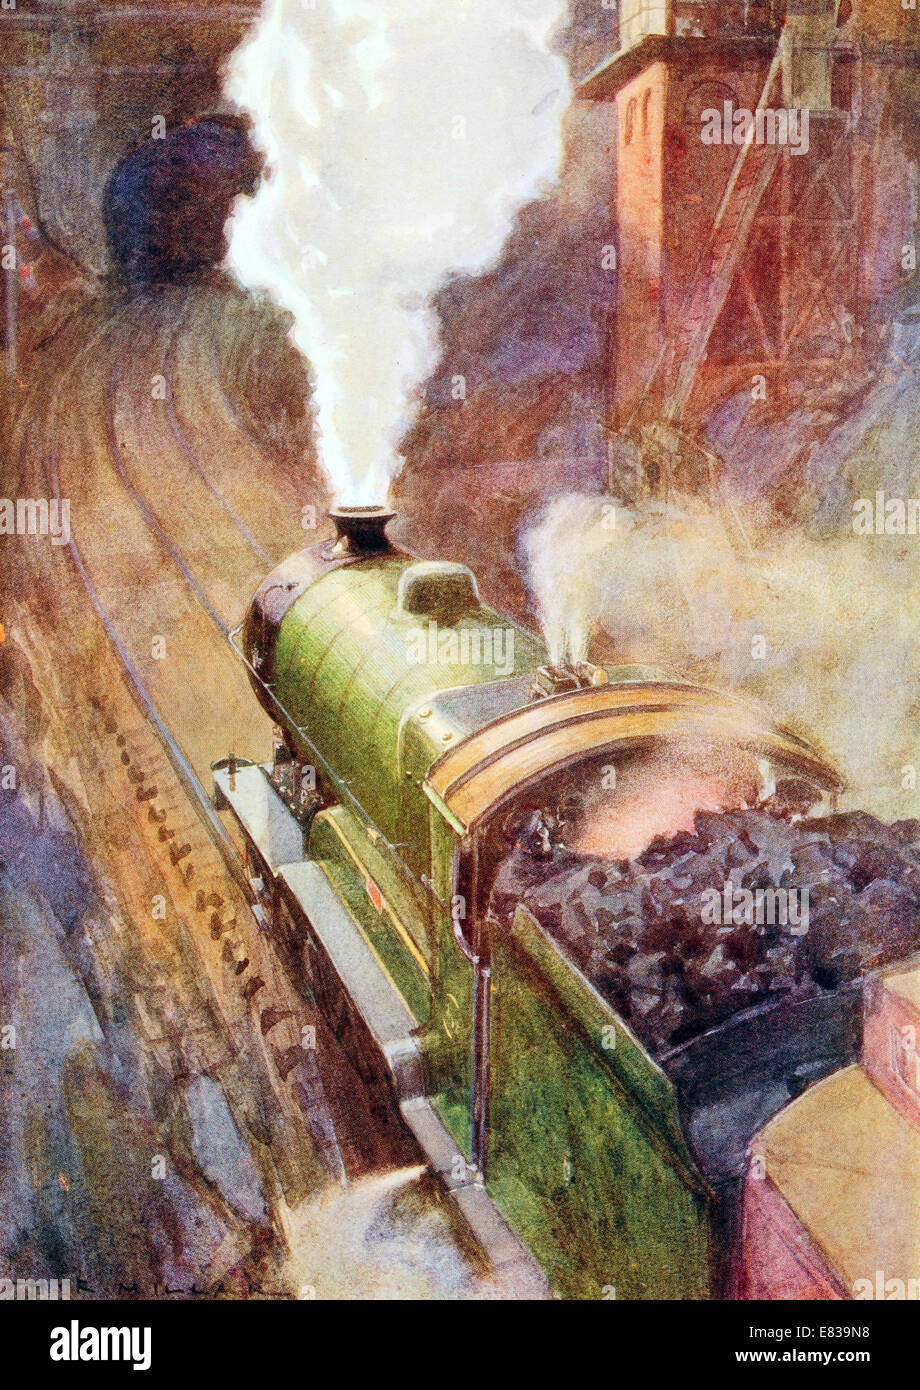 London to Sheffield Great Central Express Sir Sam Fay 4 6 0 Non stop 164 miles circa 1910 Stock Photo